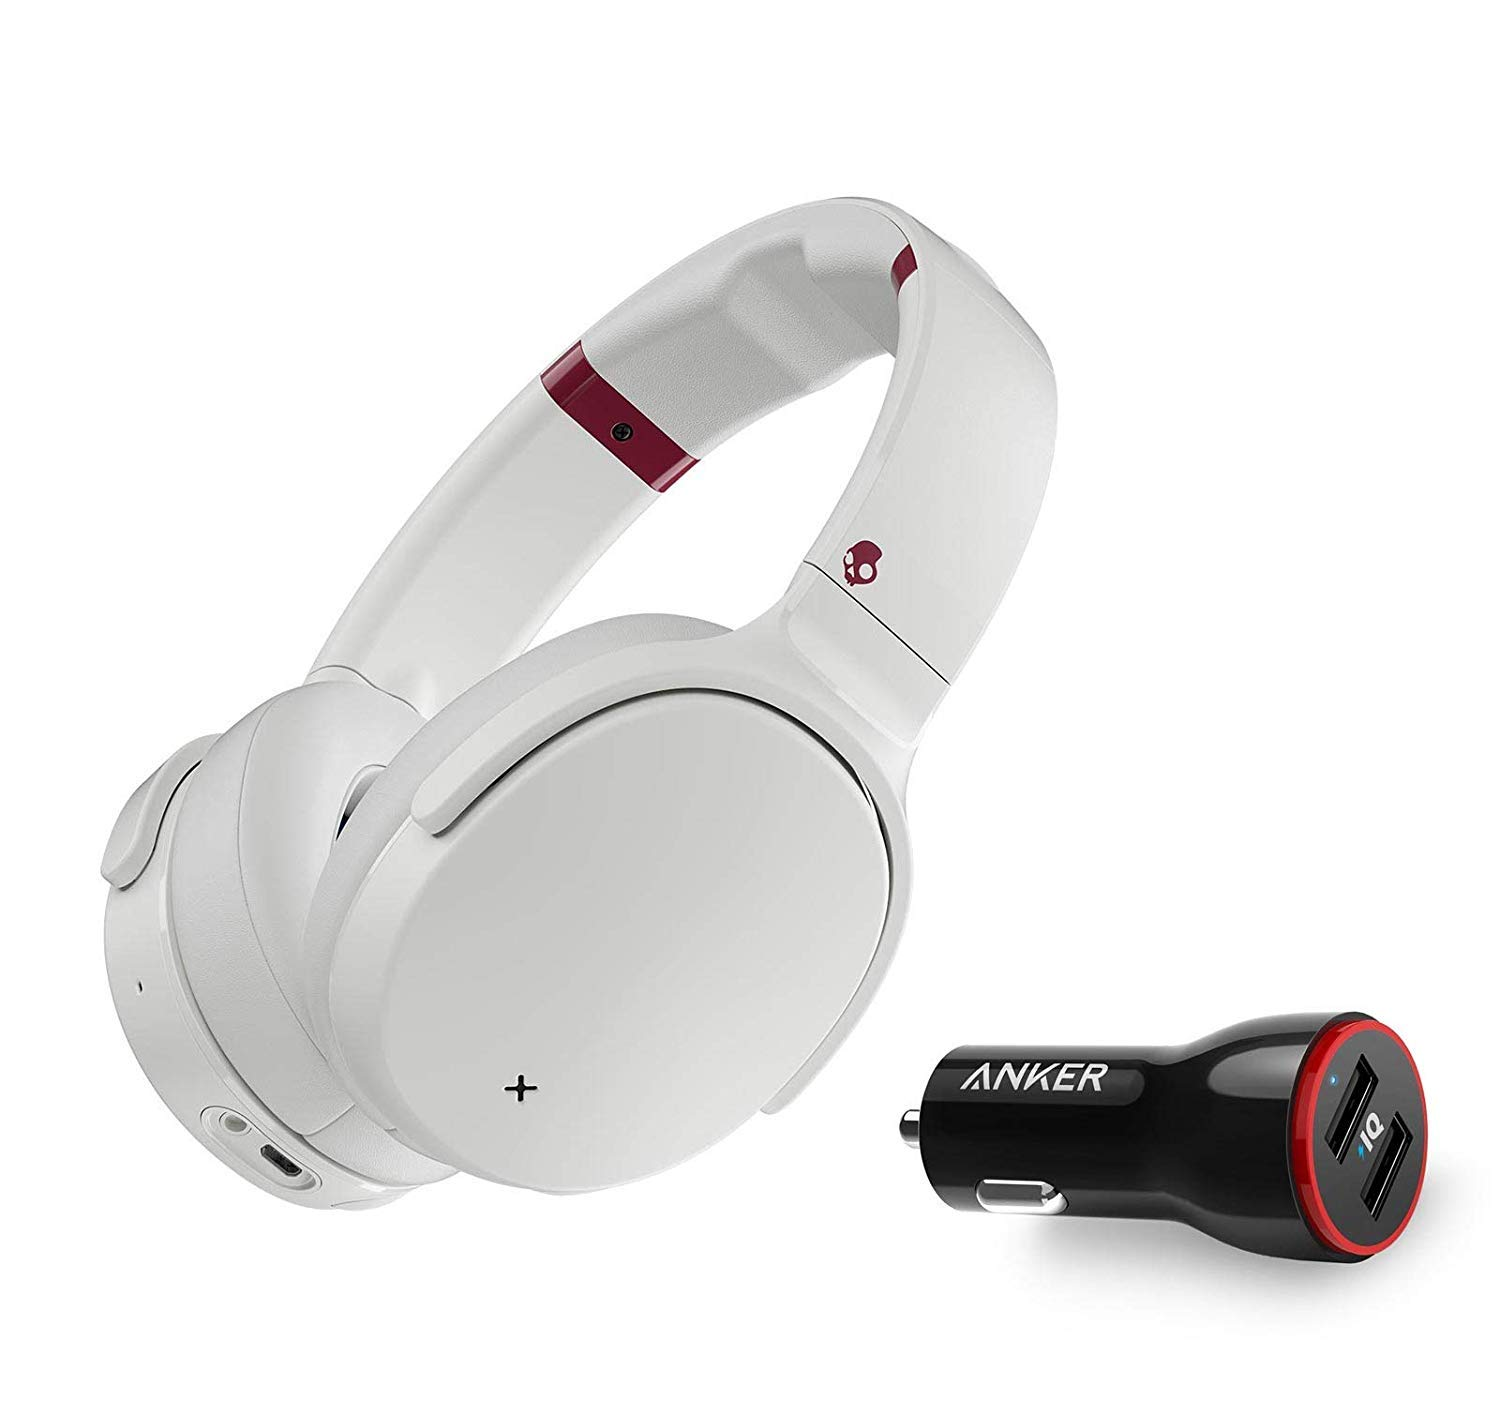 Skullcandy Venue Active Noise Canceling Over-Ear Wireless Bluetooth Headphone Bundle with Anker 2-Port USB Car Charger - White/Crimson